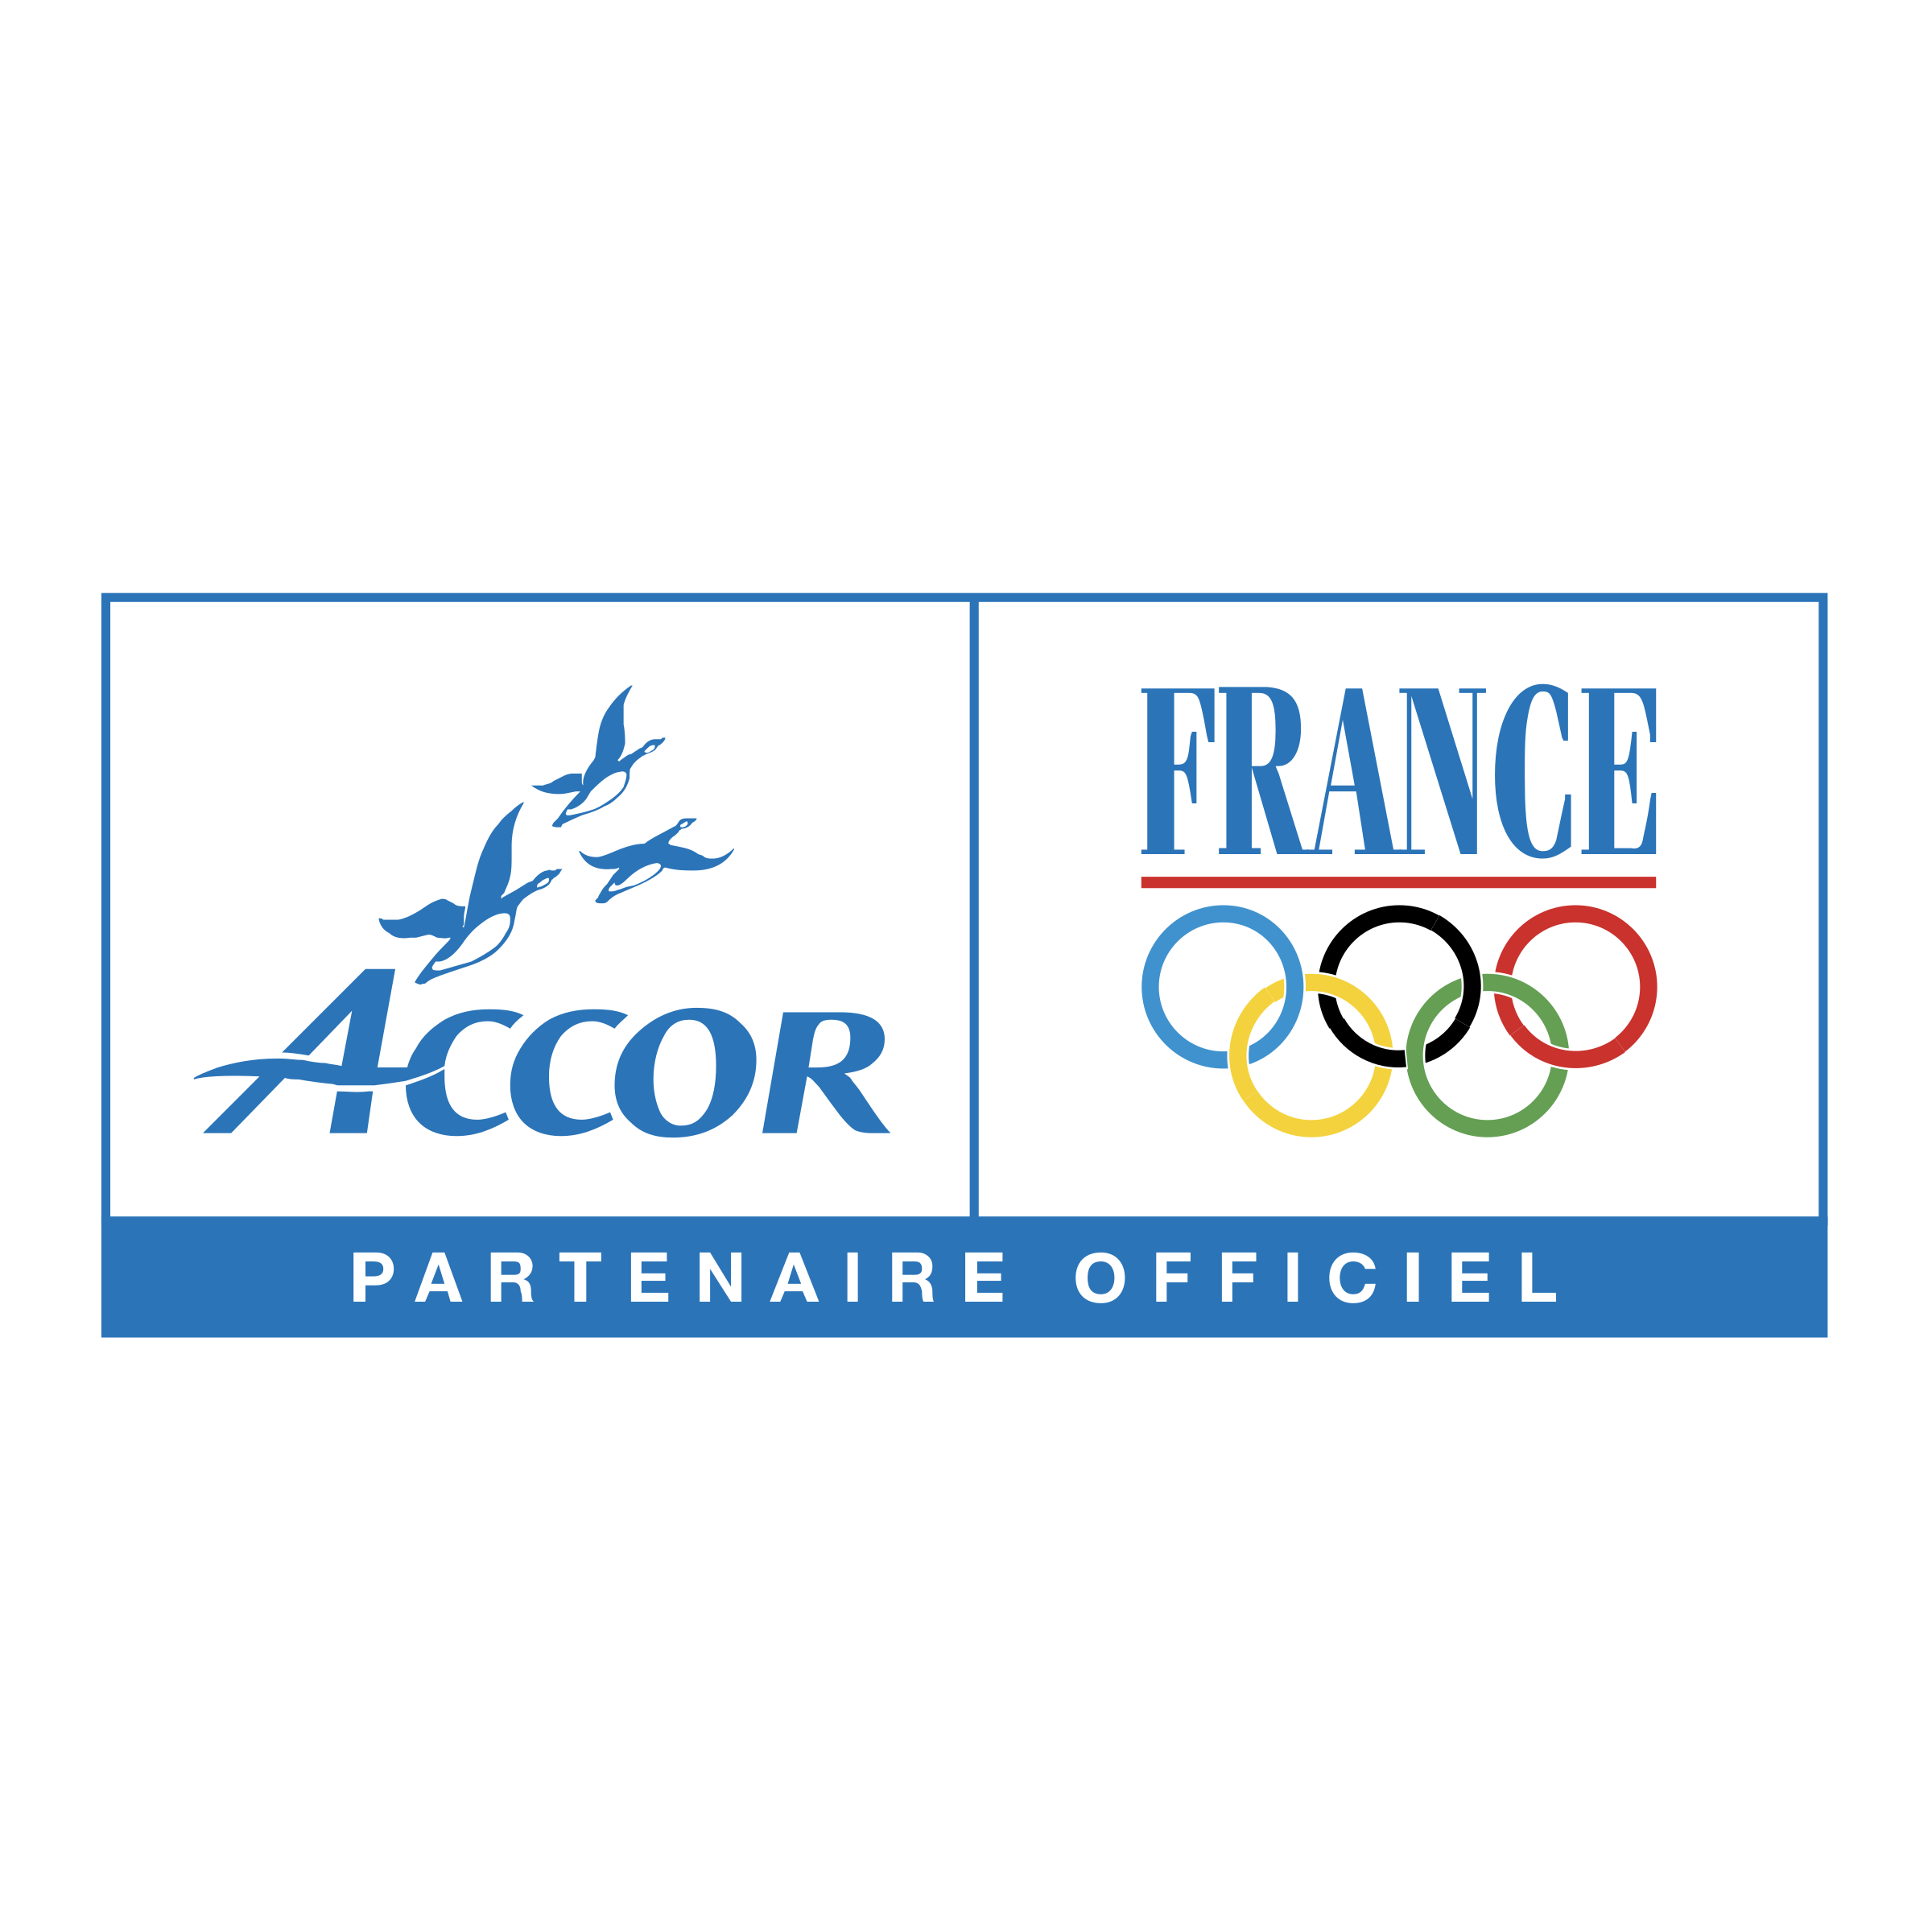 Accor Logo PNG Transparent & SVG Vector.